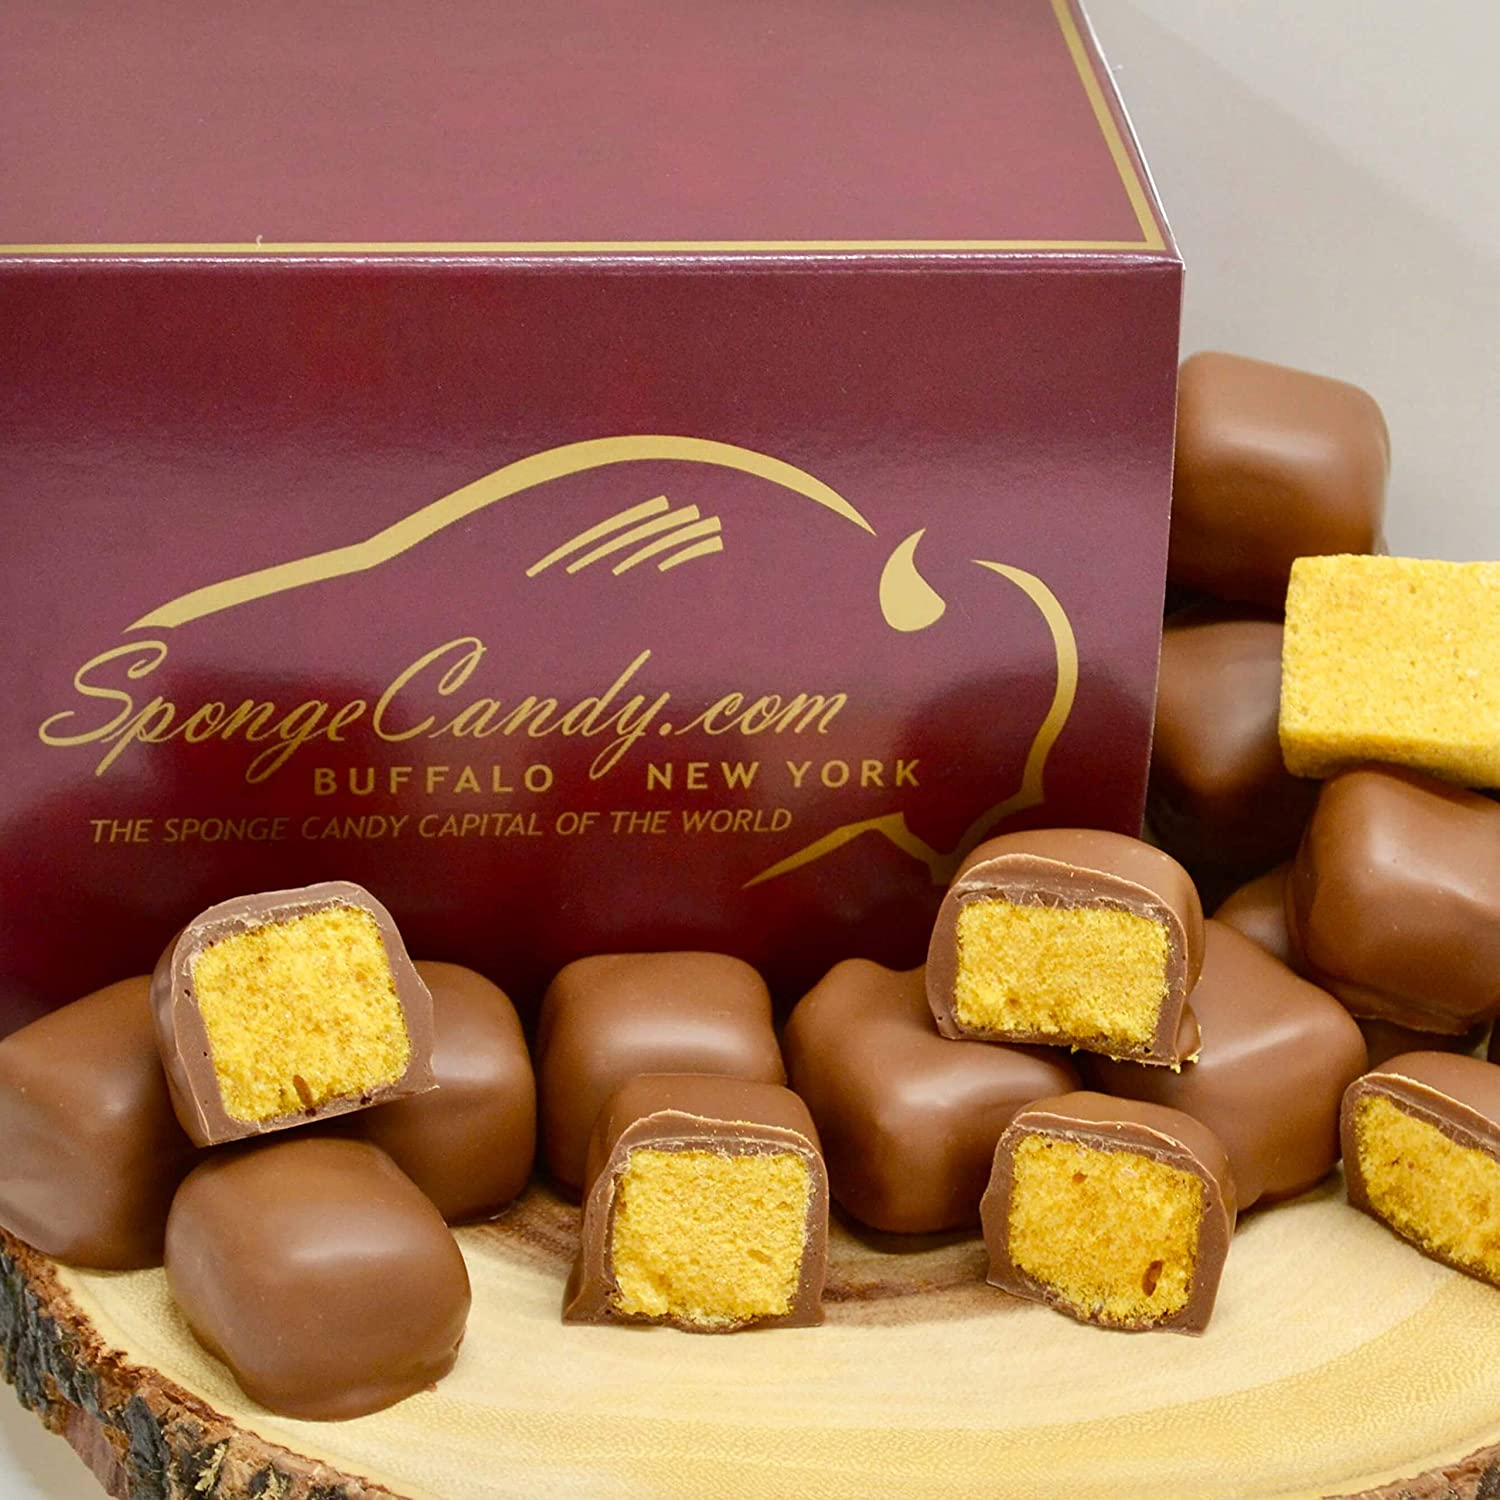 Chocolate Sponge Candy (4 flavors available) - from the Sponge Candy Capital of the World, Buffalo New York! (Milk Chocolate)